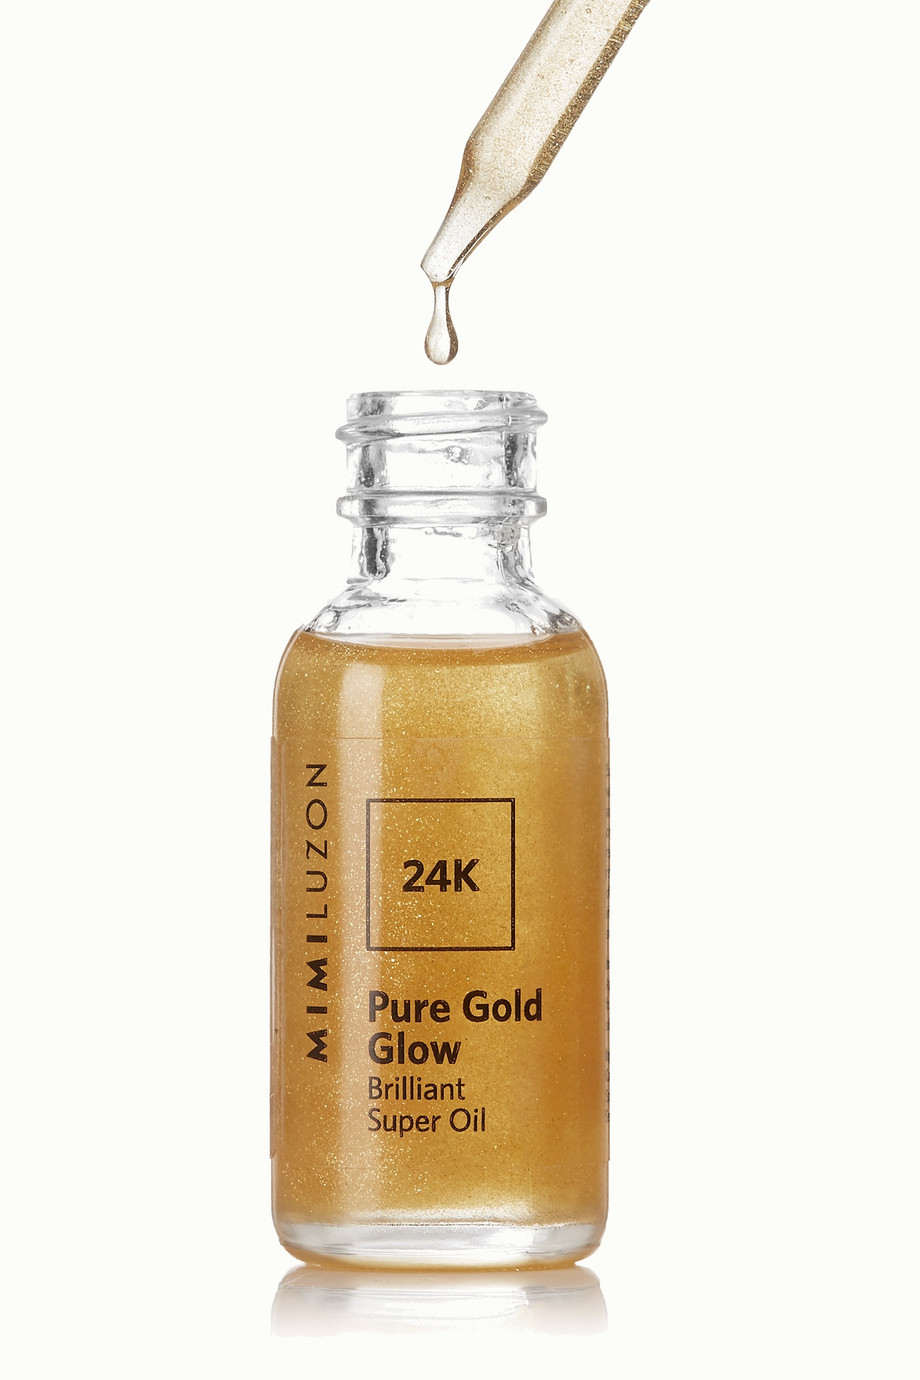 Mimi Luzon 24K Pure Gold Glow Brilliant Super Oil, 30ml